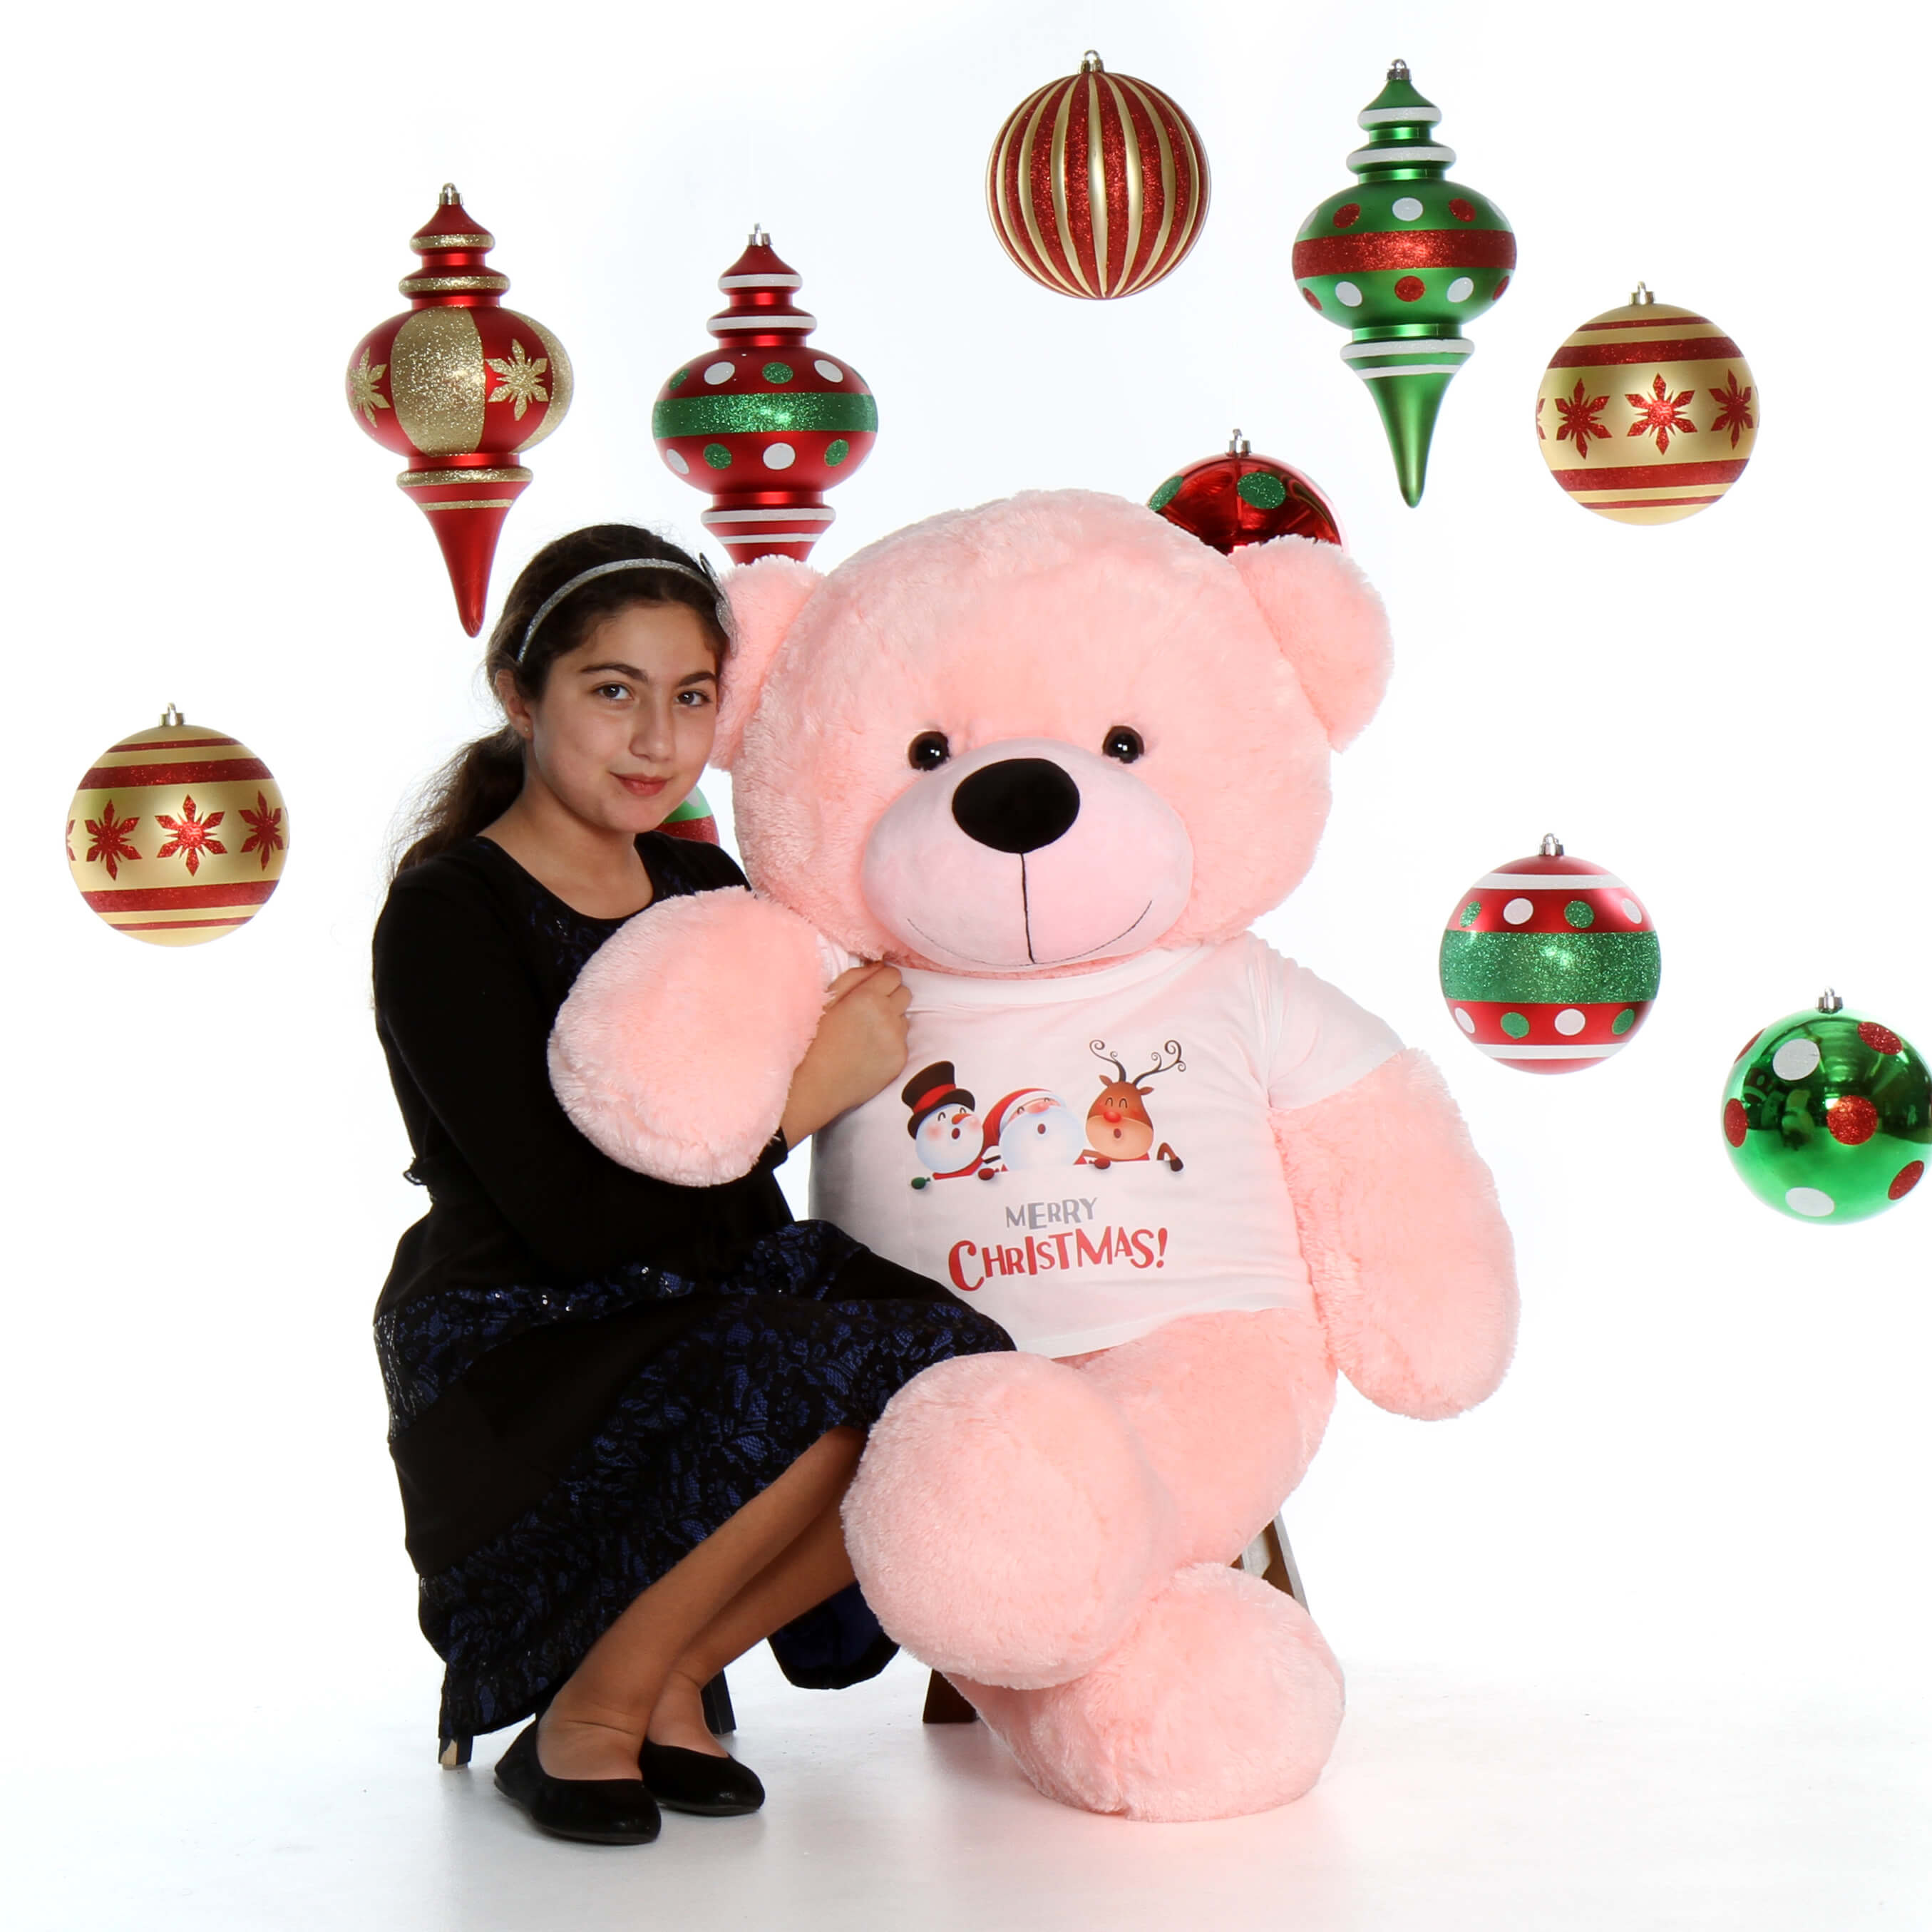 4ft-lady-cuddles-rose-pink-merry-christmas-teddy-bear1.jpg